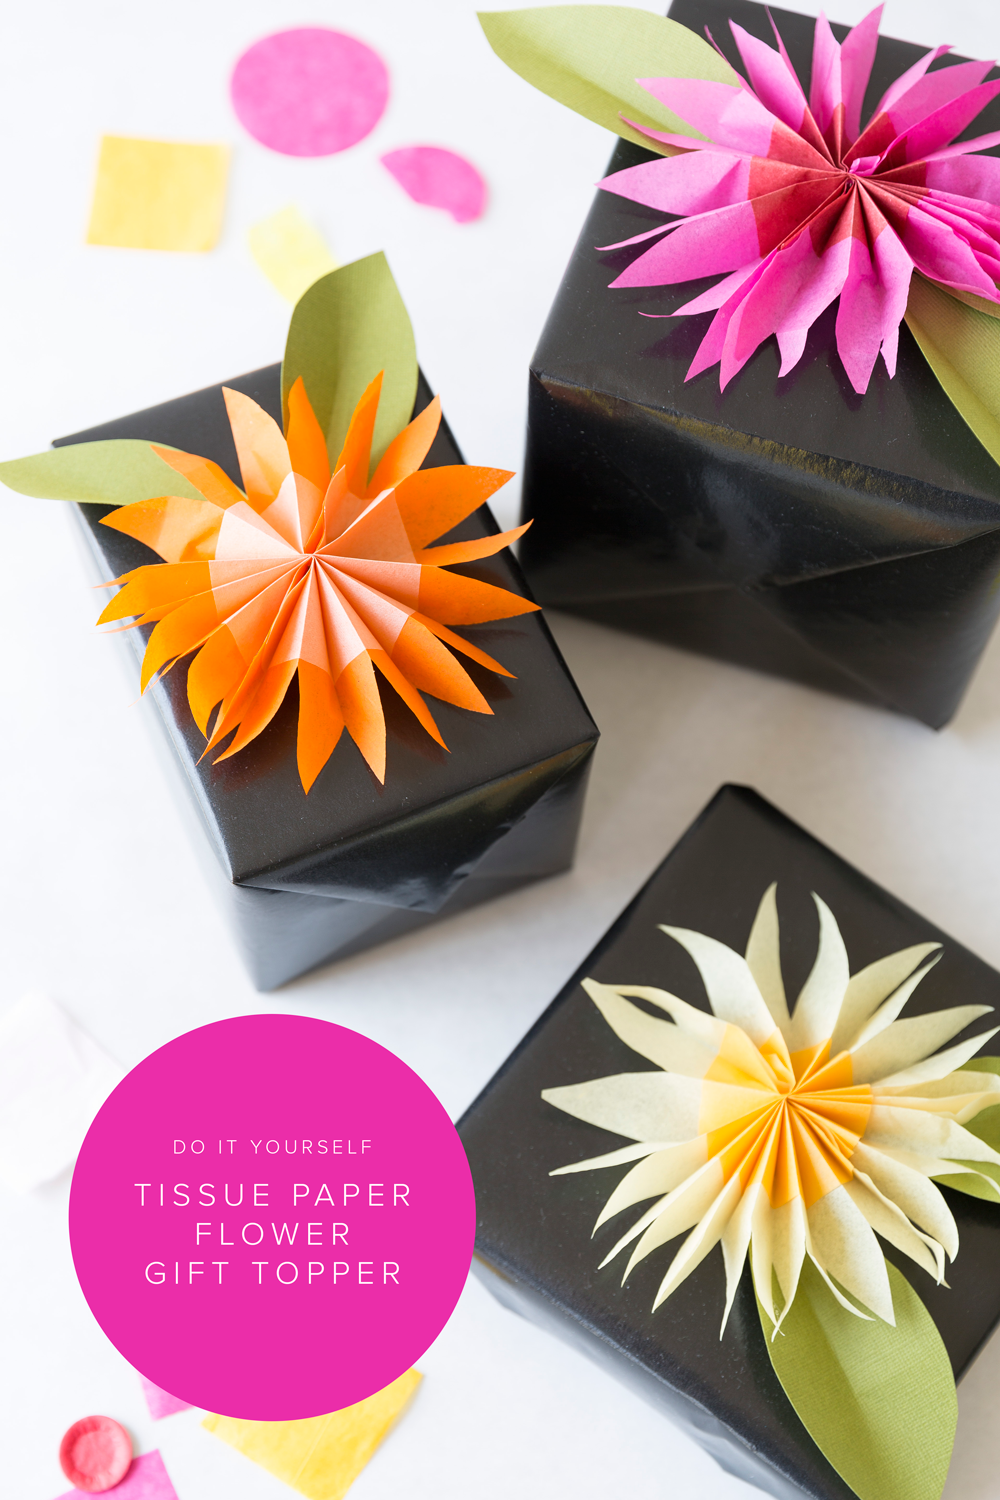 Tissue paper flower gift topper